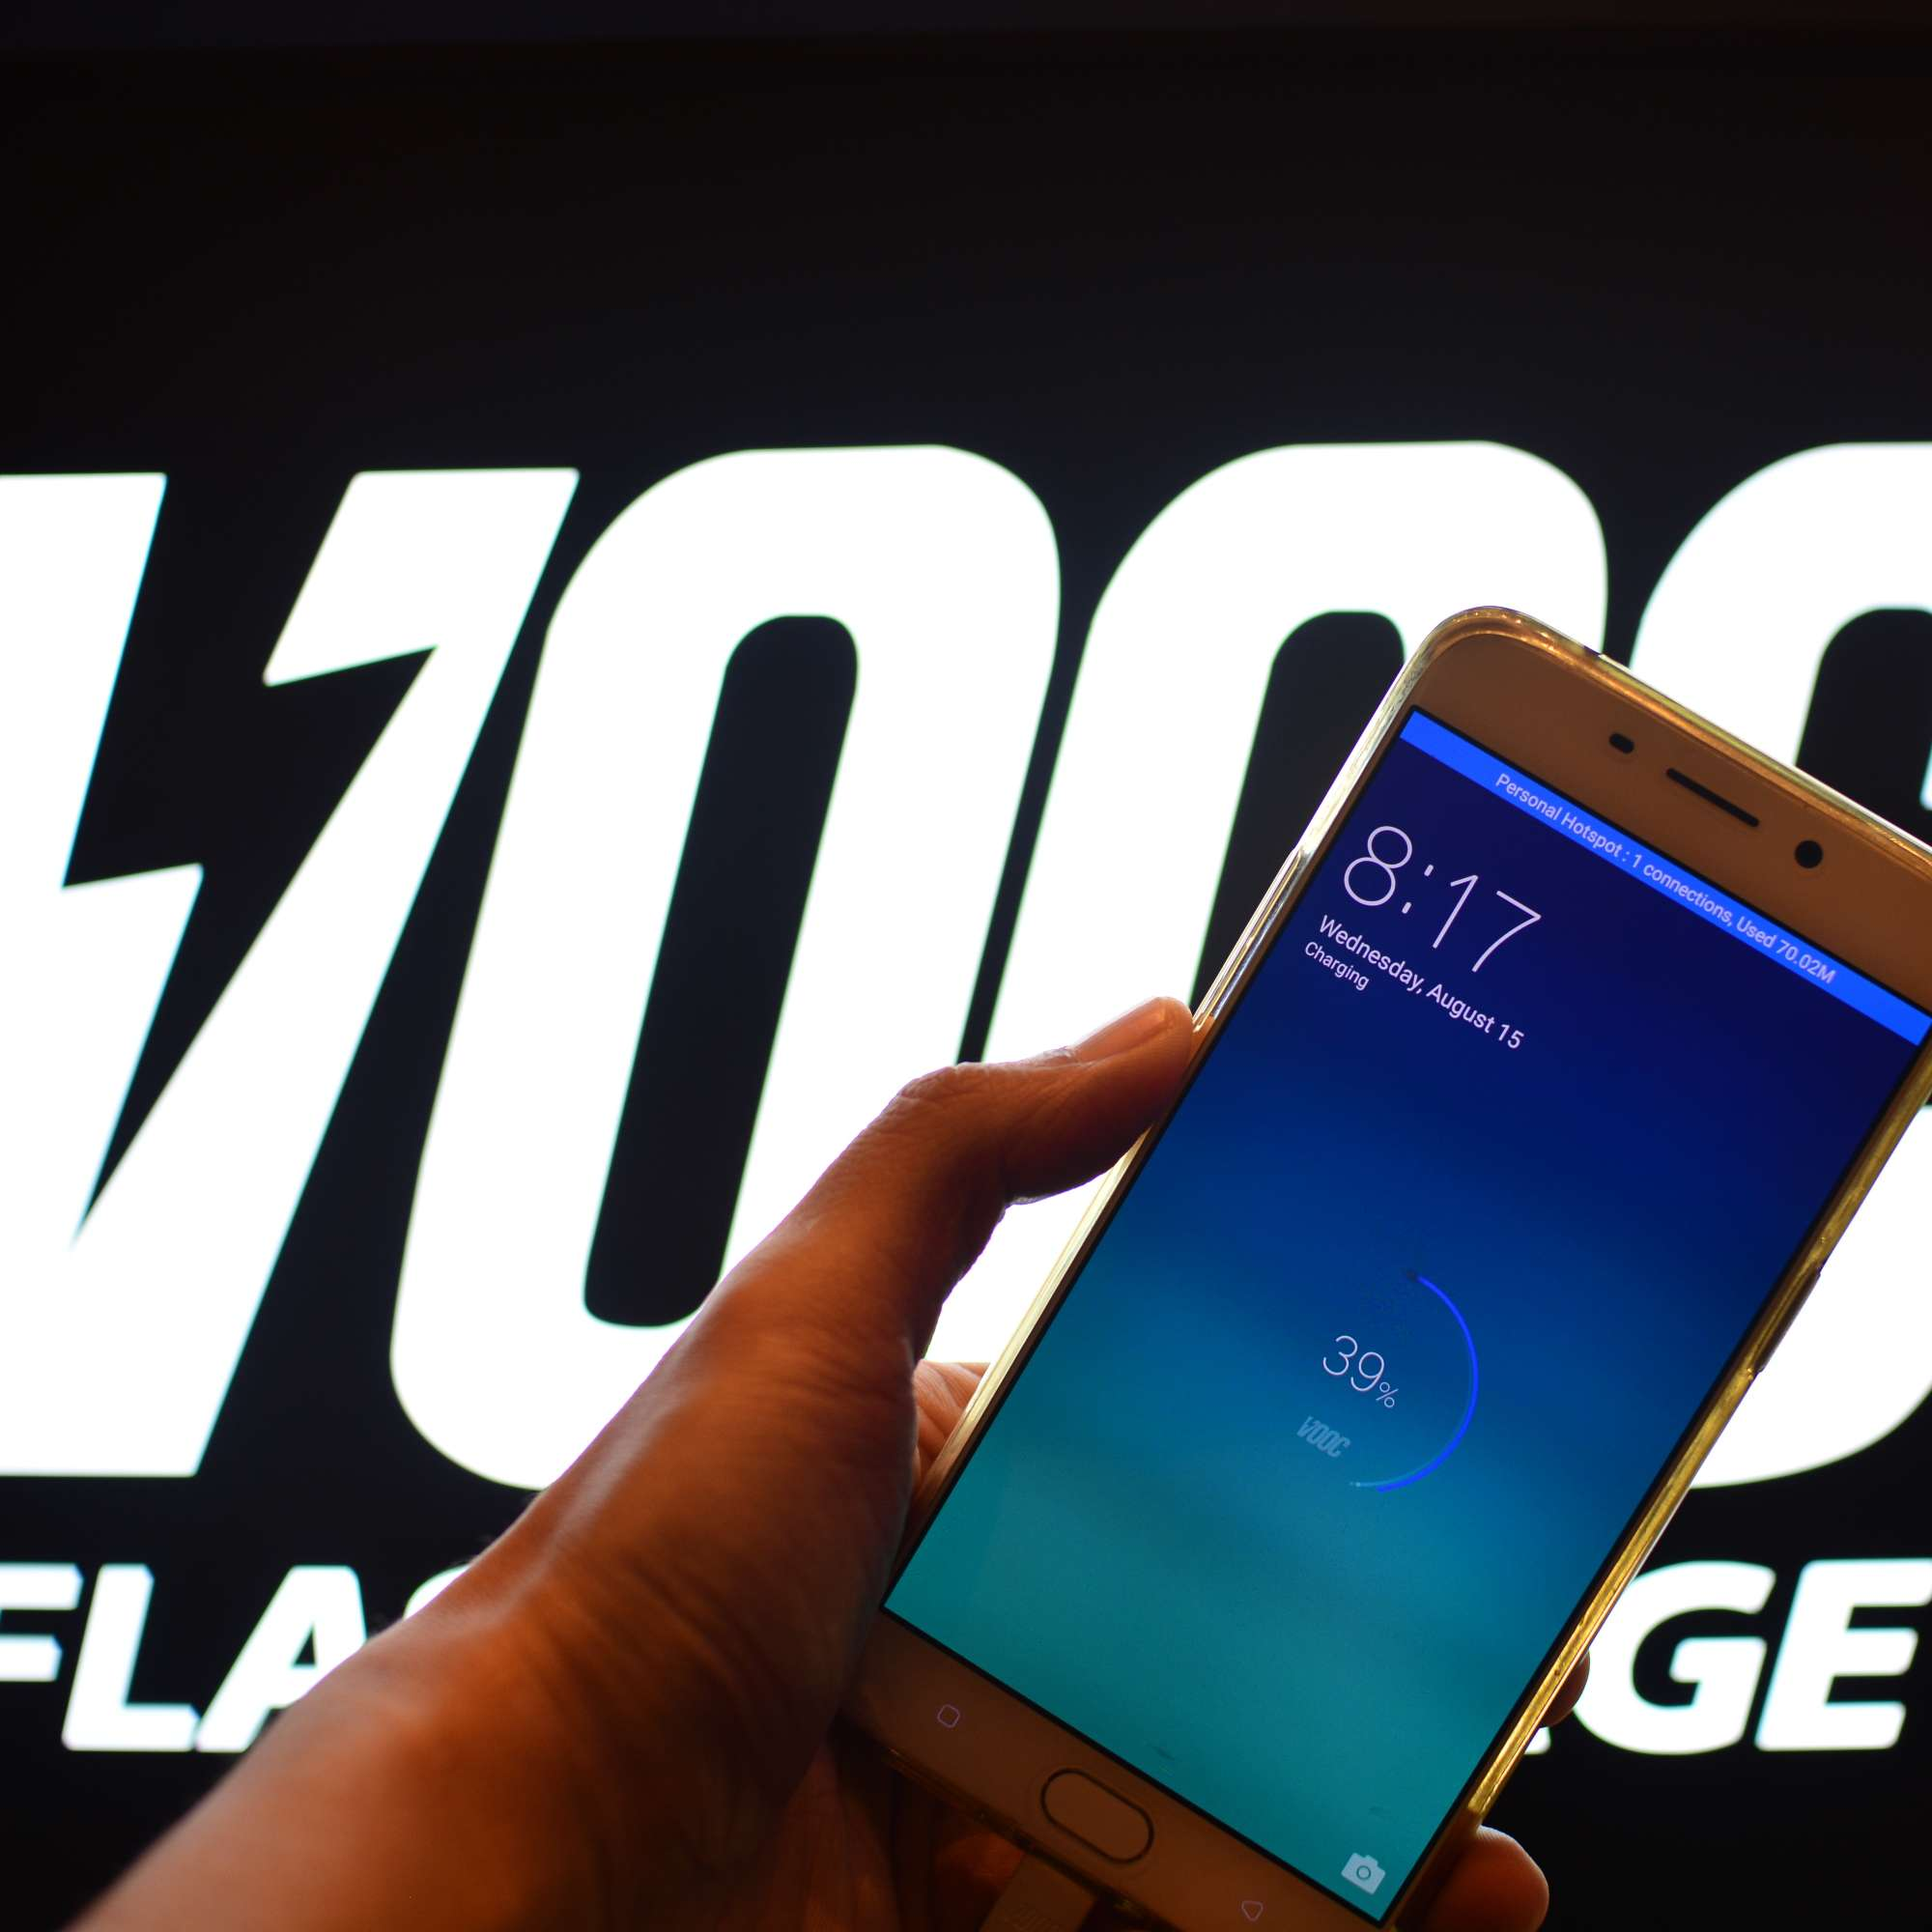 VOOC Fast Charge can yield enough battery life for 2 hours of talk time with just 5 minutes of charging